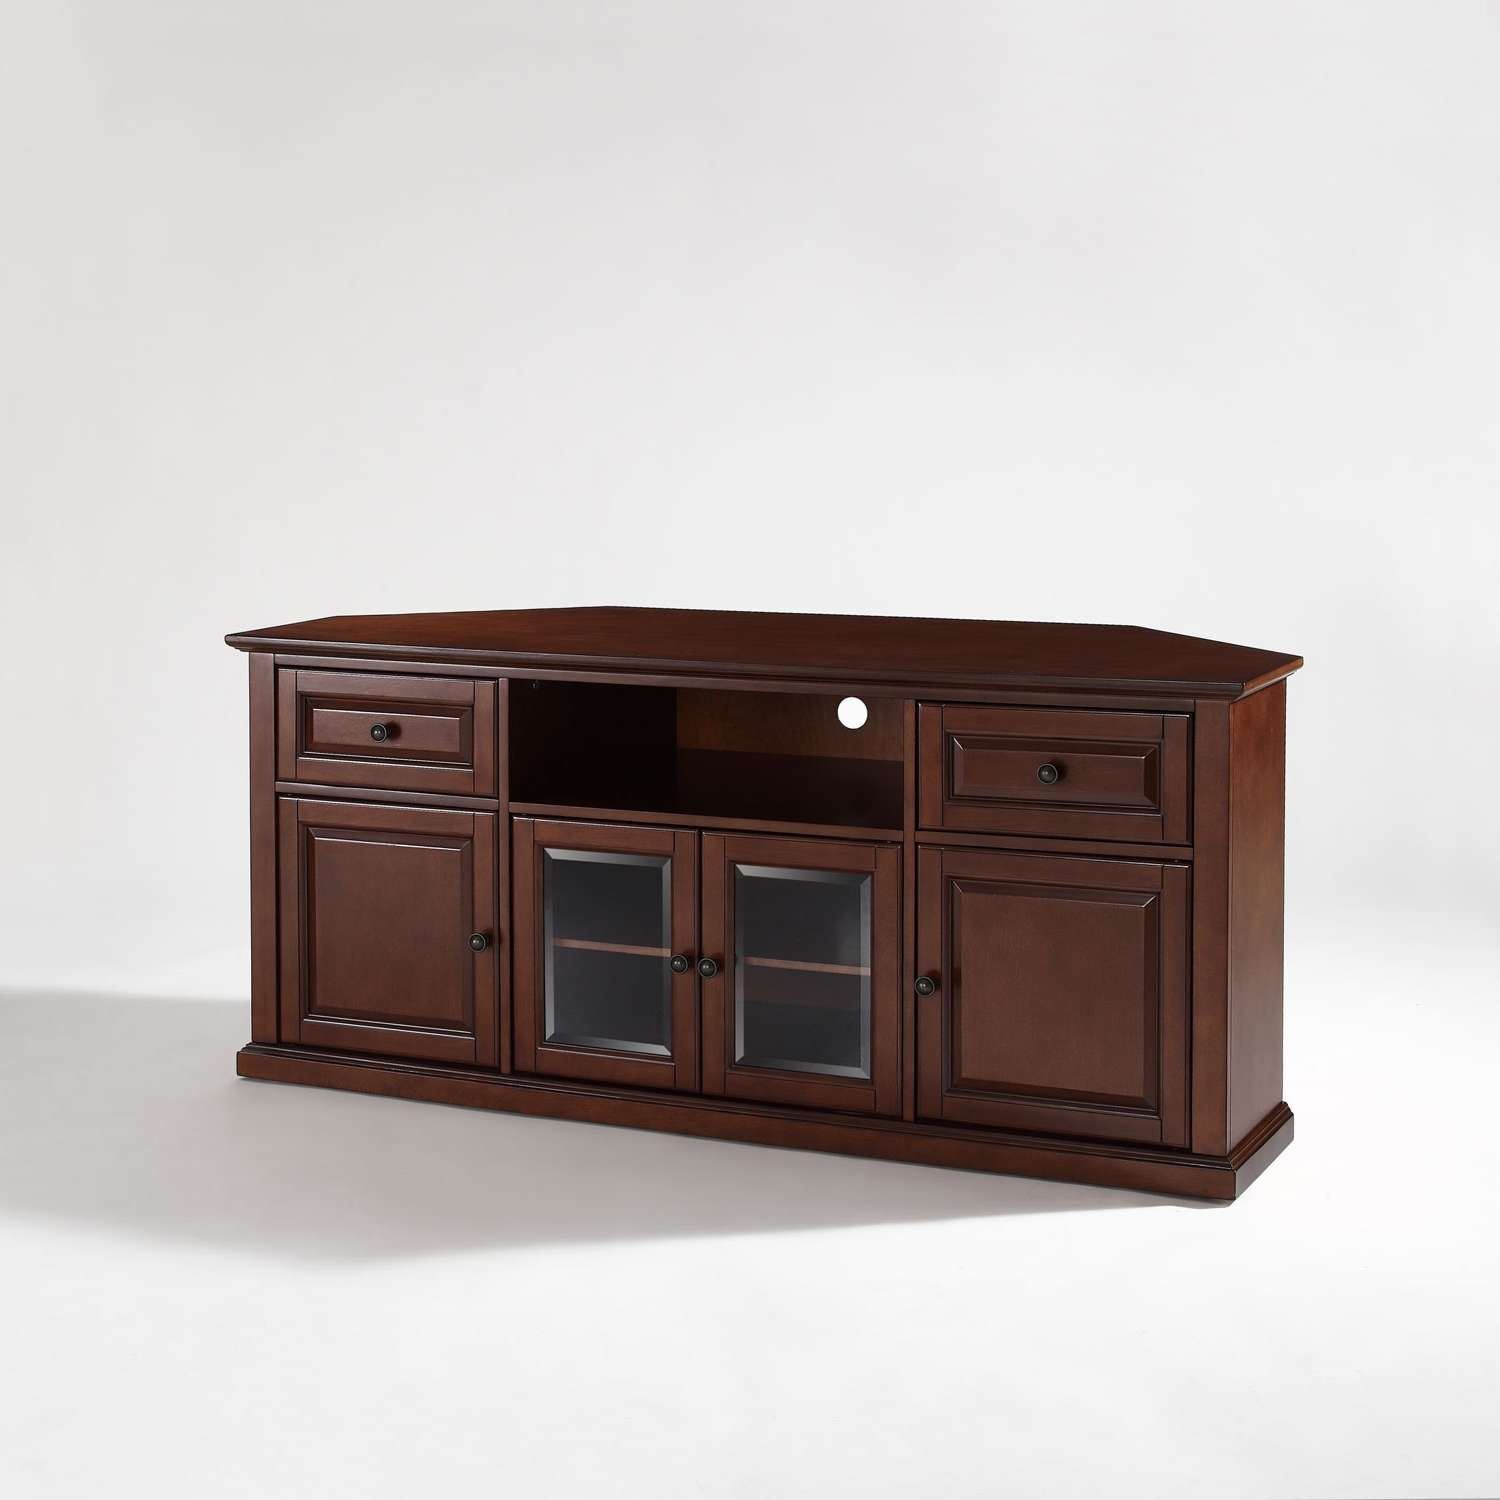 50 Unforgettable Corner Tv Stand 40 Inch Image Inspirations Corner Intended For 50 Inch Corner Tv Cabinets (View 5 of 20)